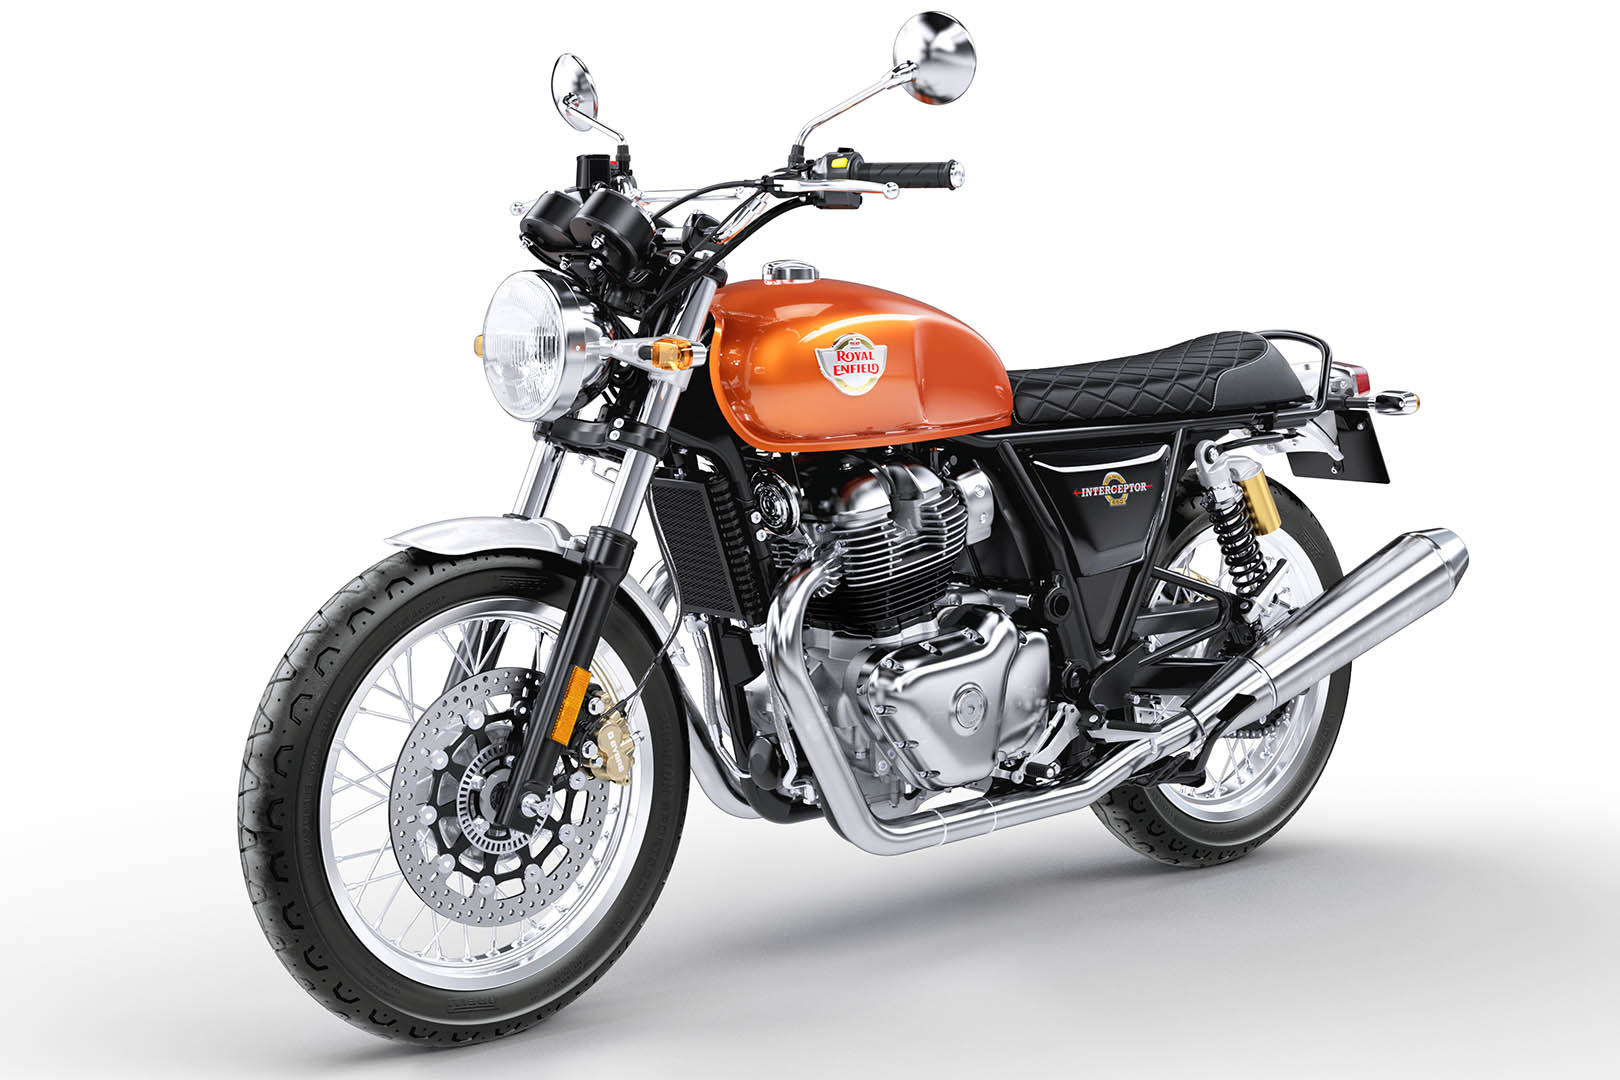 Royal Enfield Recall For Braking Corrosion Issues